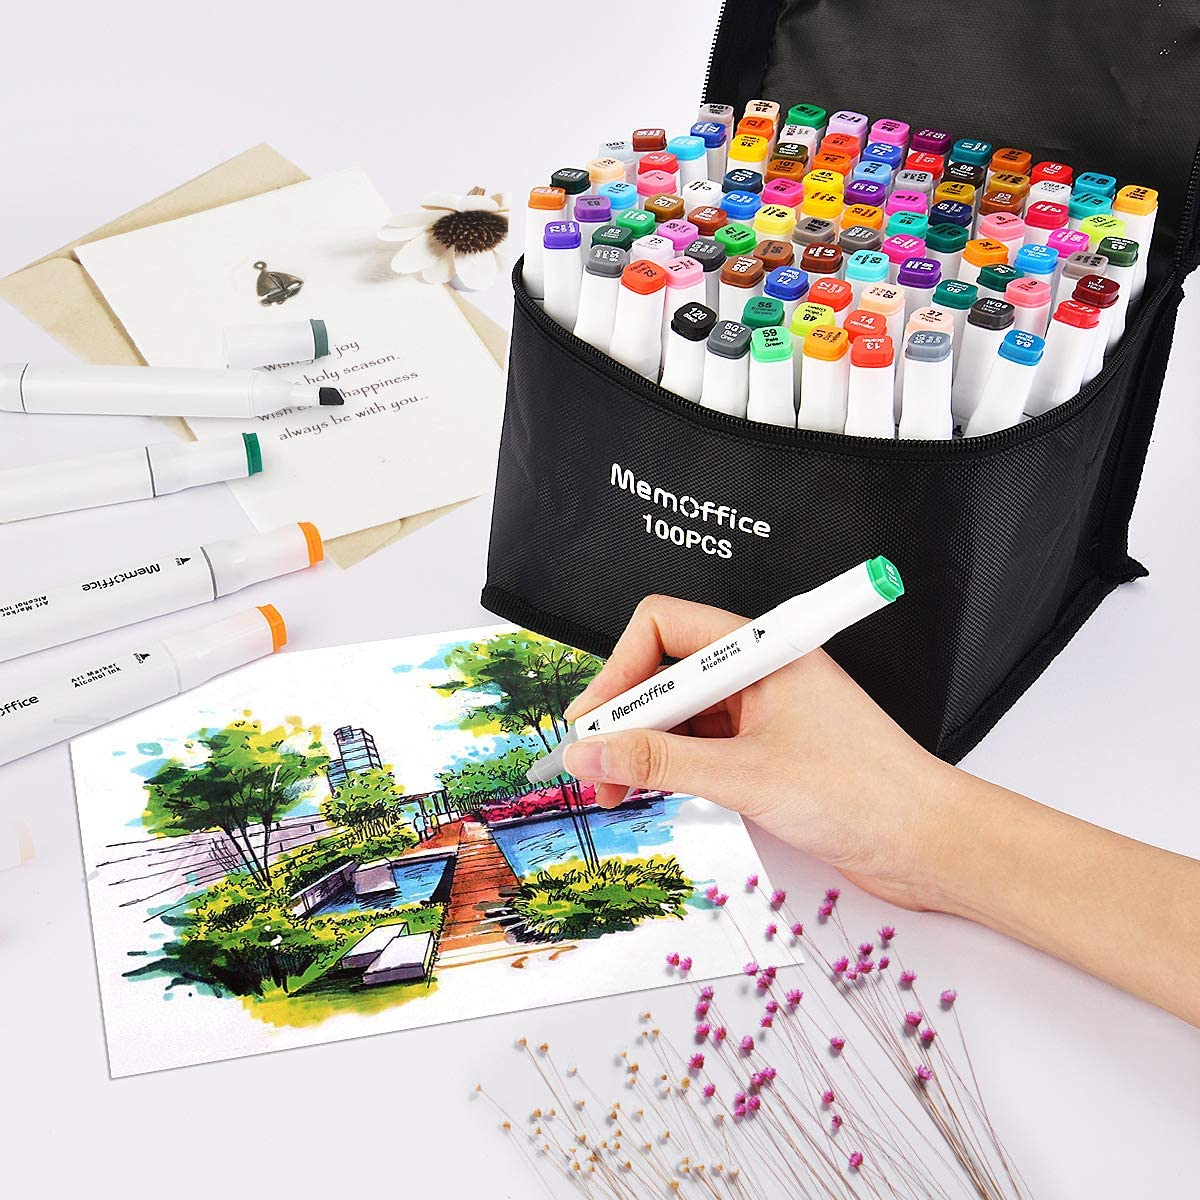 Sketch Markers Set for Kids Adults Artists Memoffice 100 Colors Dual Tips Alcohol Markers Highlighting Alcohol Based Markers with Carrying Case for Anime Design Painting Great Gift Idea